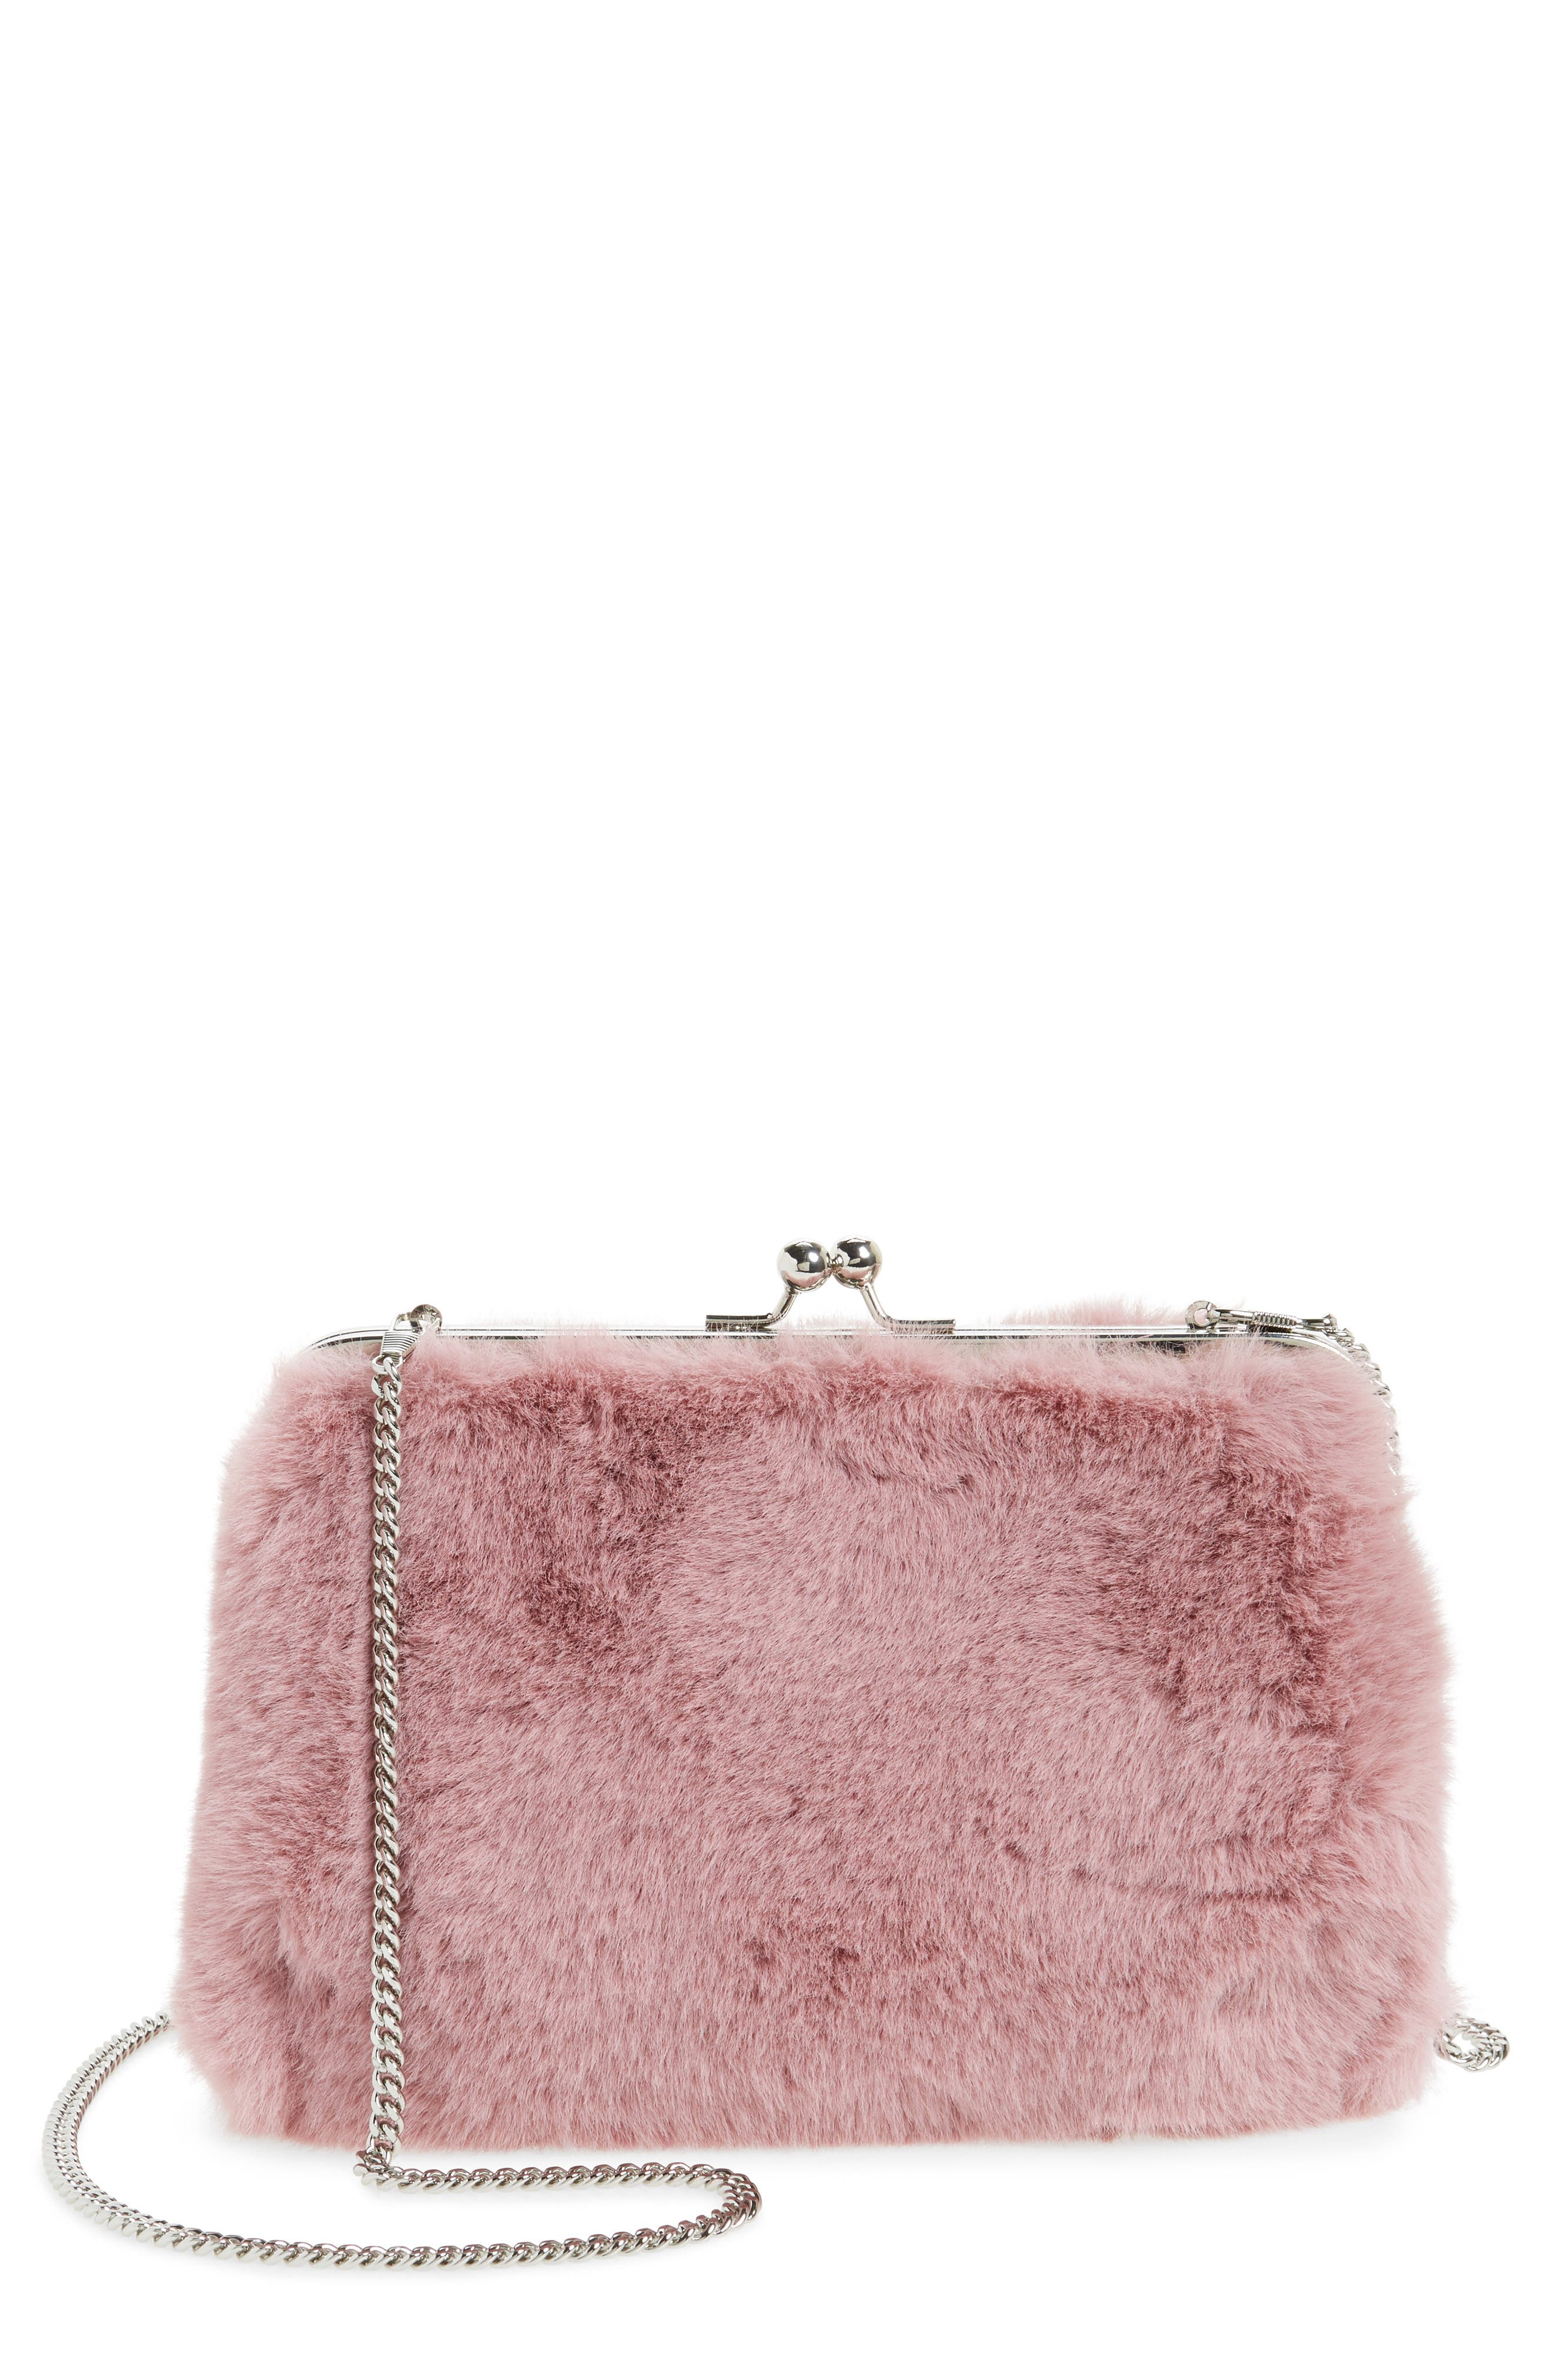 Alternate Image 1 Selected - Chelsea28 Jagger Faux Fur Clutch